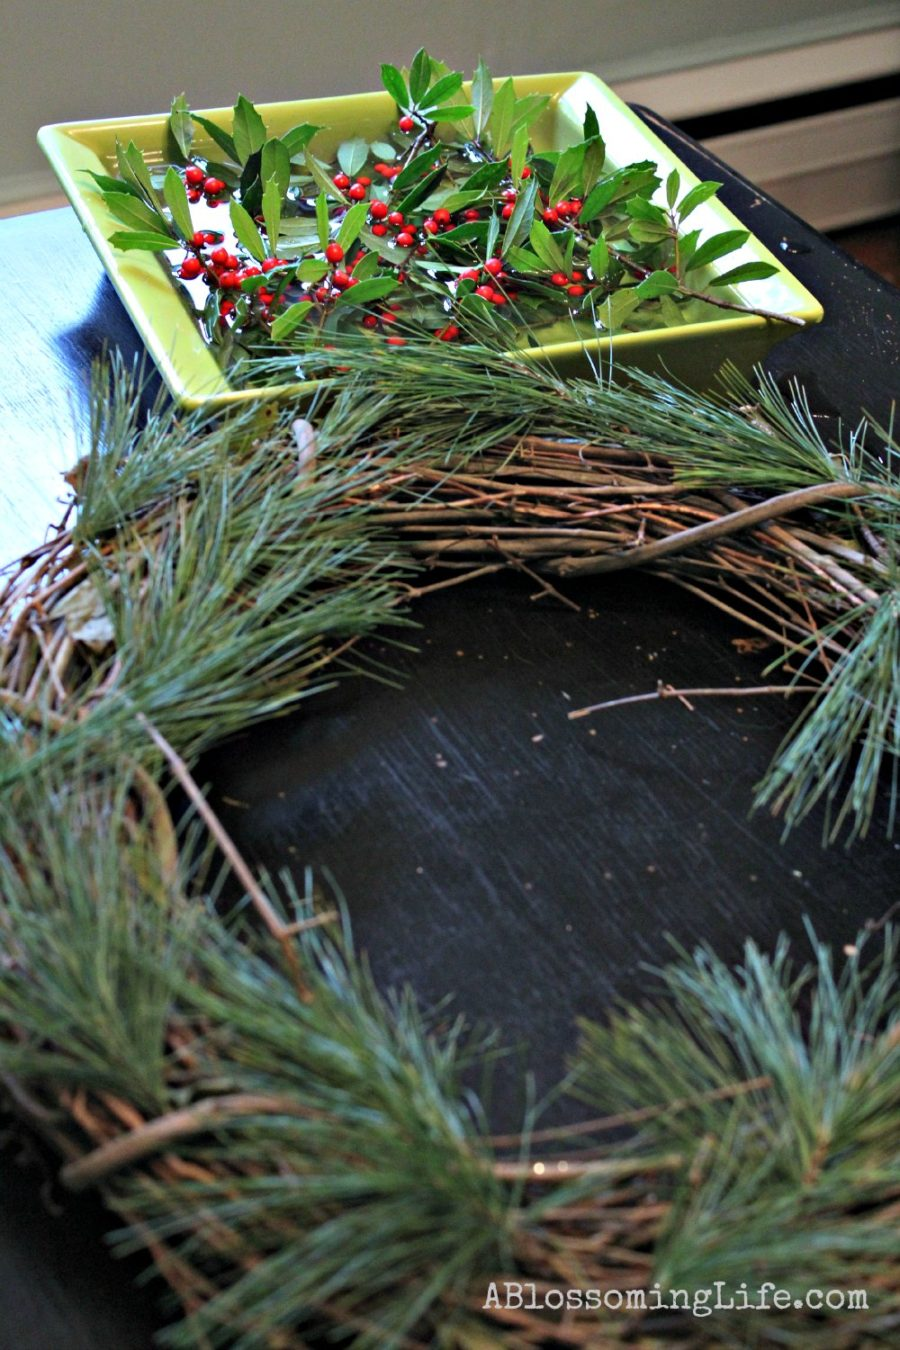 Twig wreath with evergreens attached and holly soaking in water behind it to make a DIY Christmas Wreath